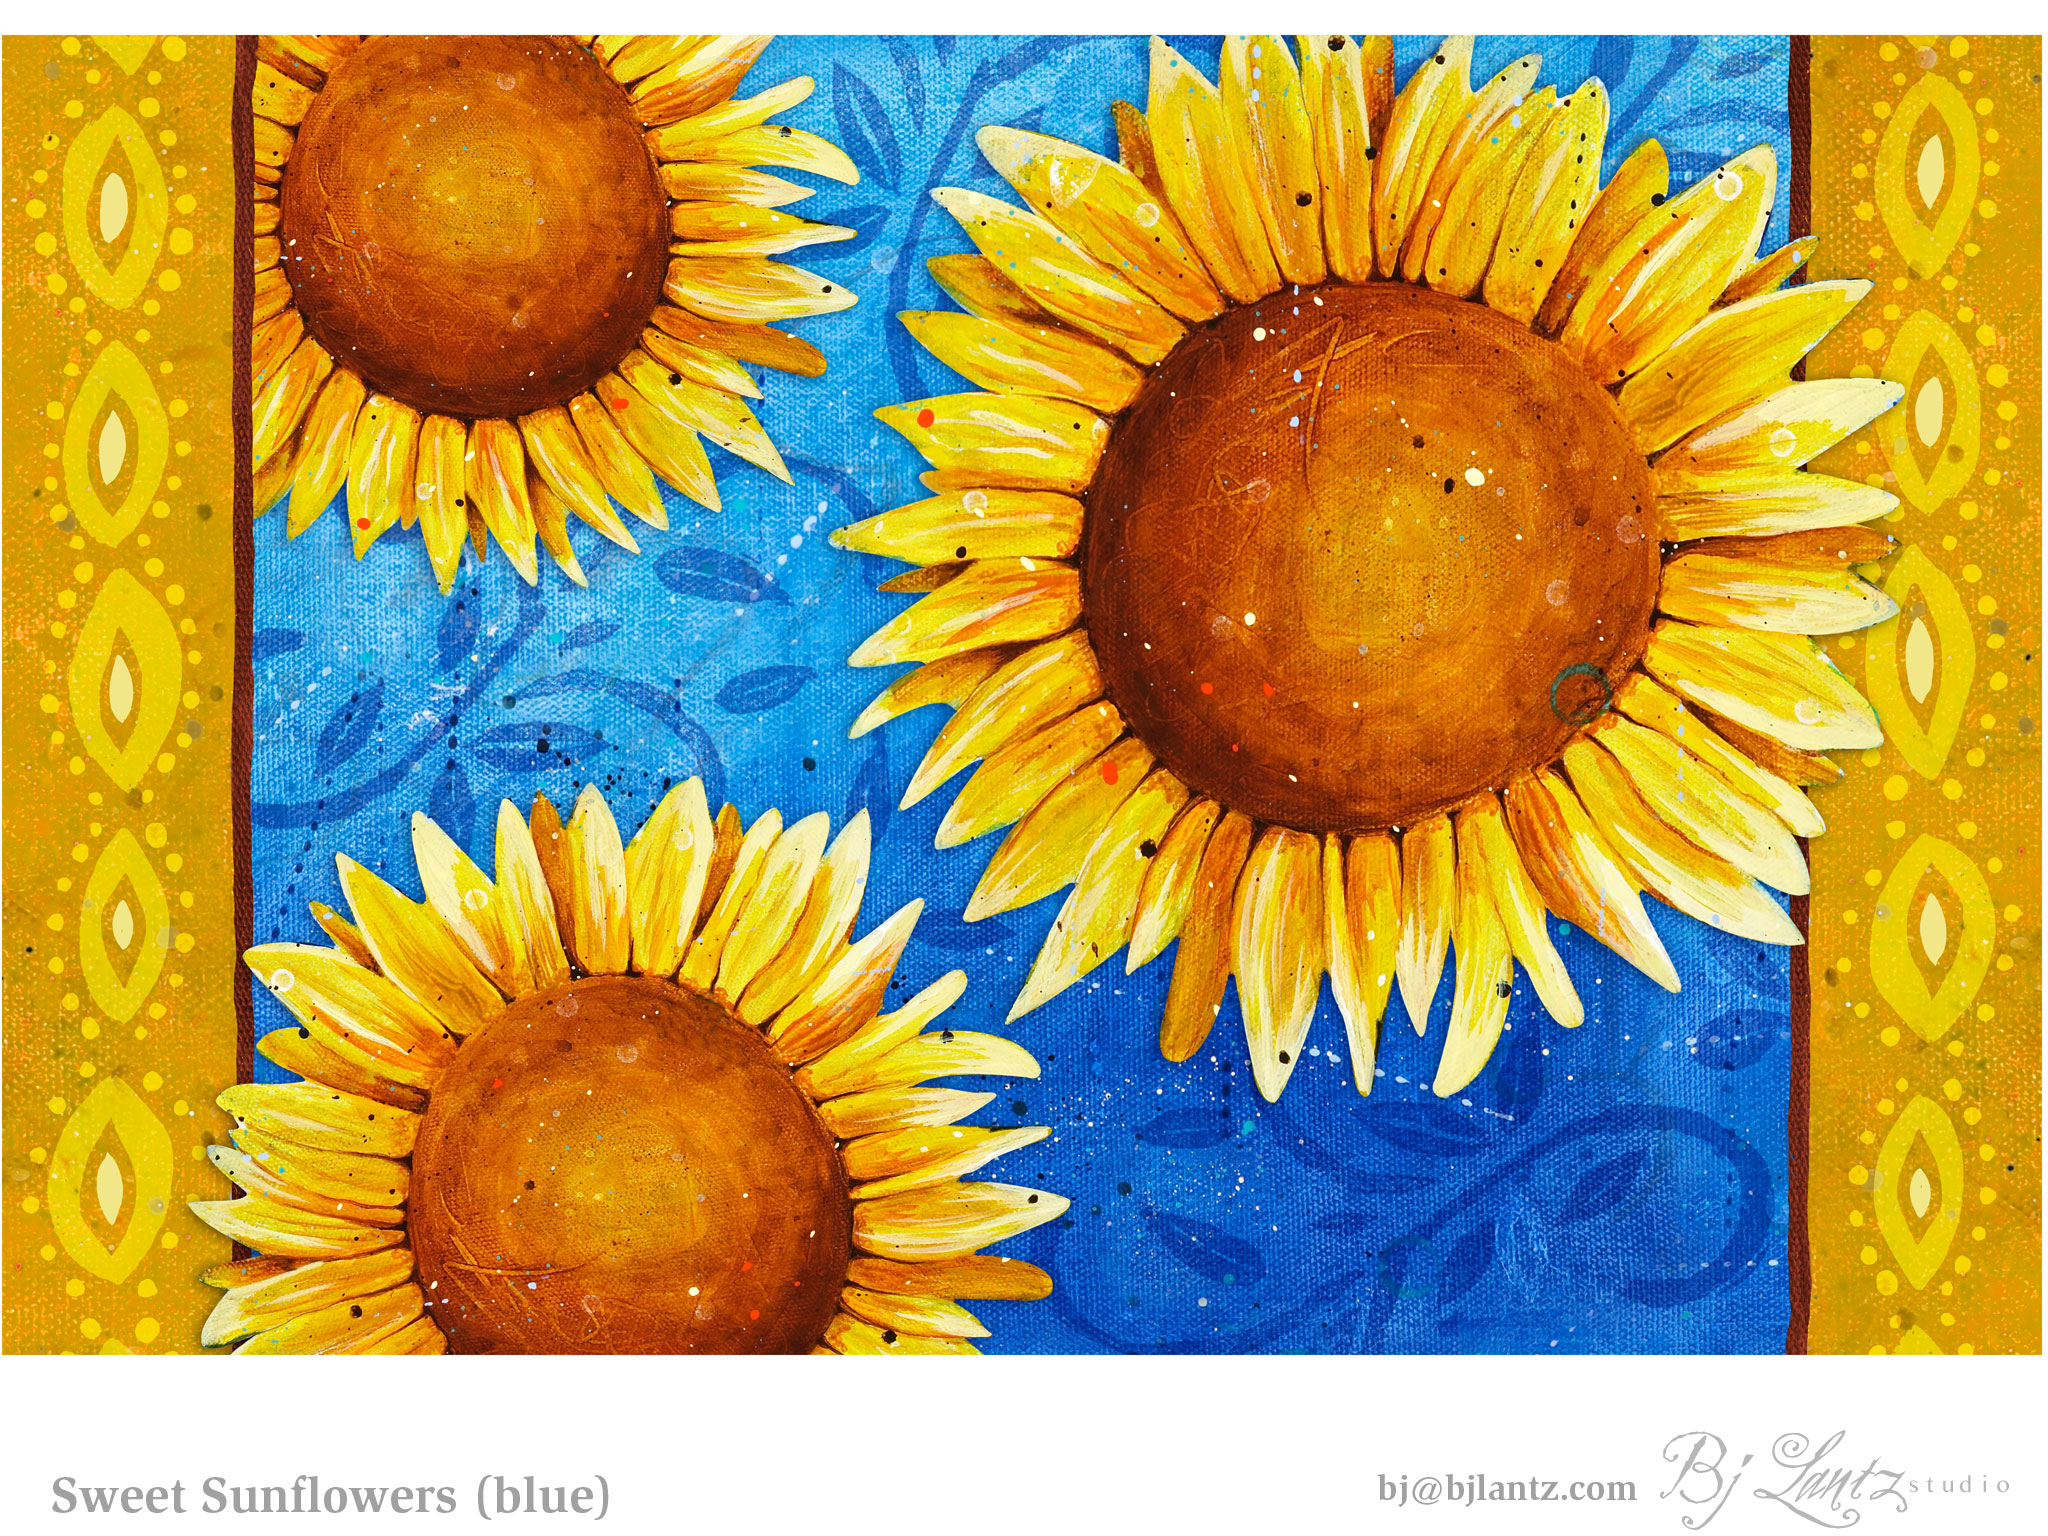 Sweetsunflowers-blue-BJ-Lantz_2.jpg